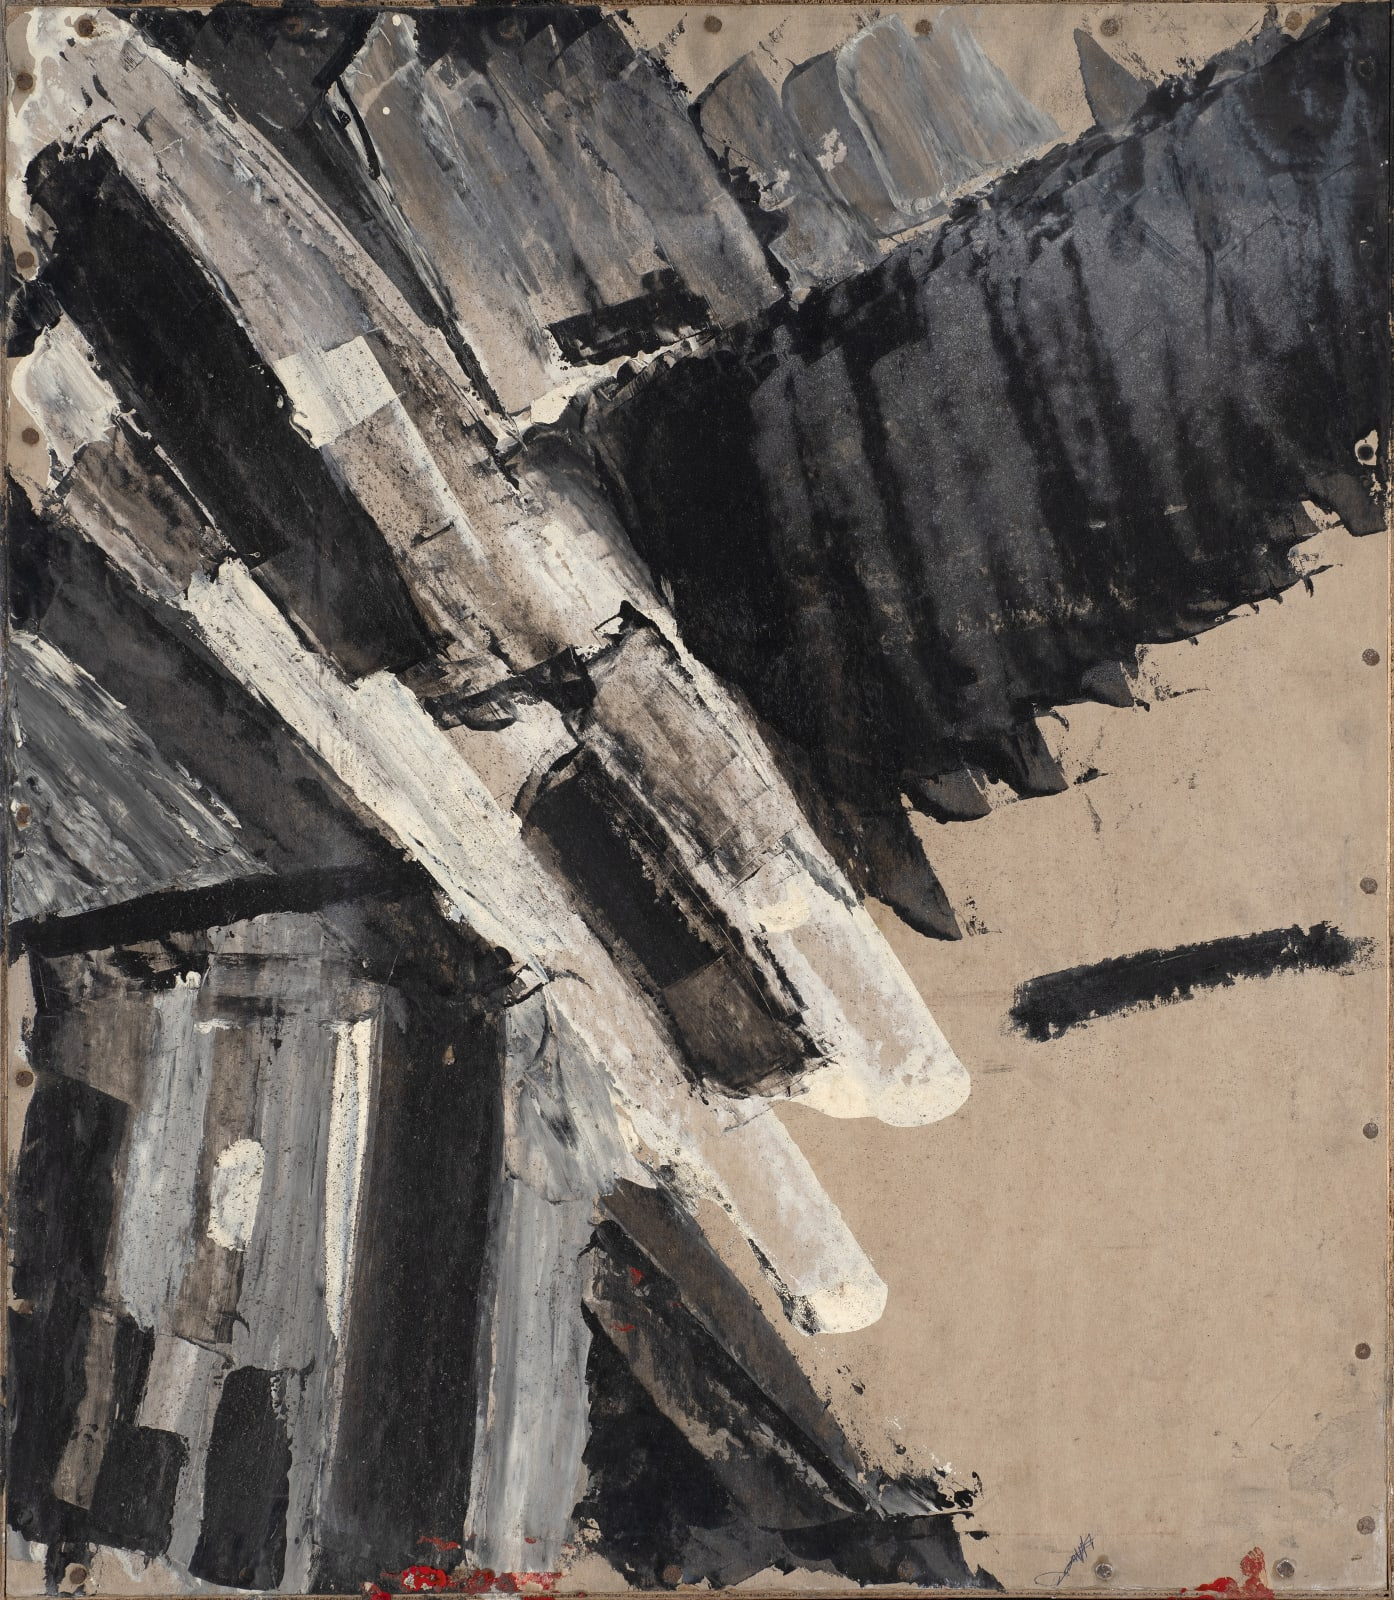 Painting on Cardboard, c. 1961-62 Oil on board 68 x 59cm (verso of Painting on Cardboard) The Gustav Metzger Foundation